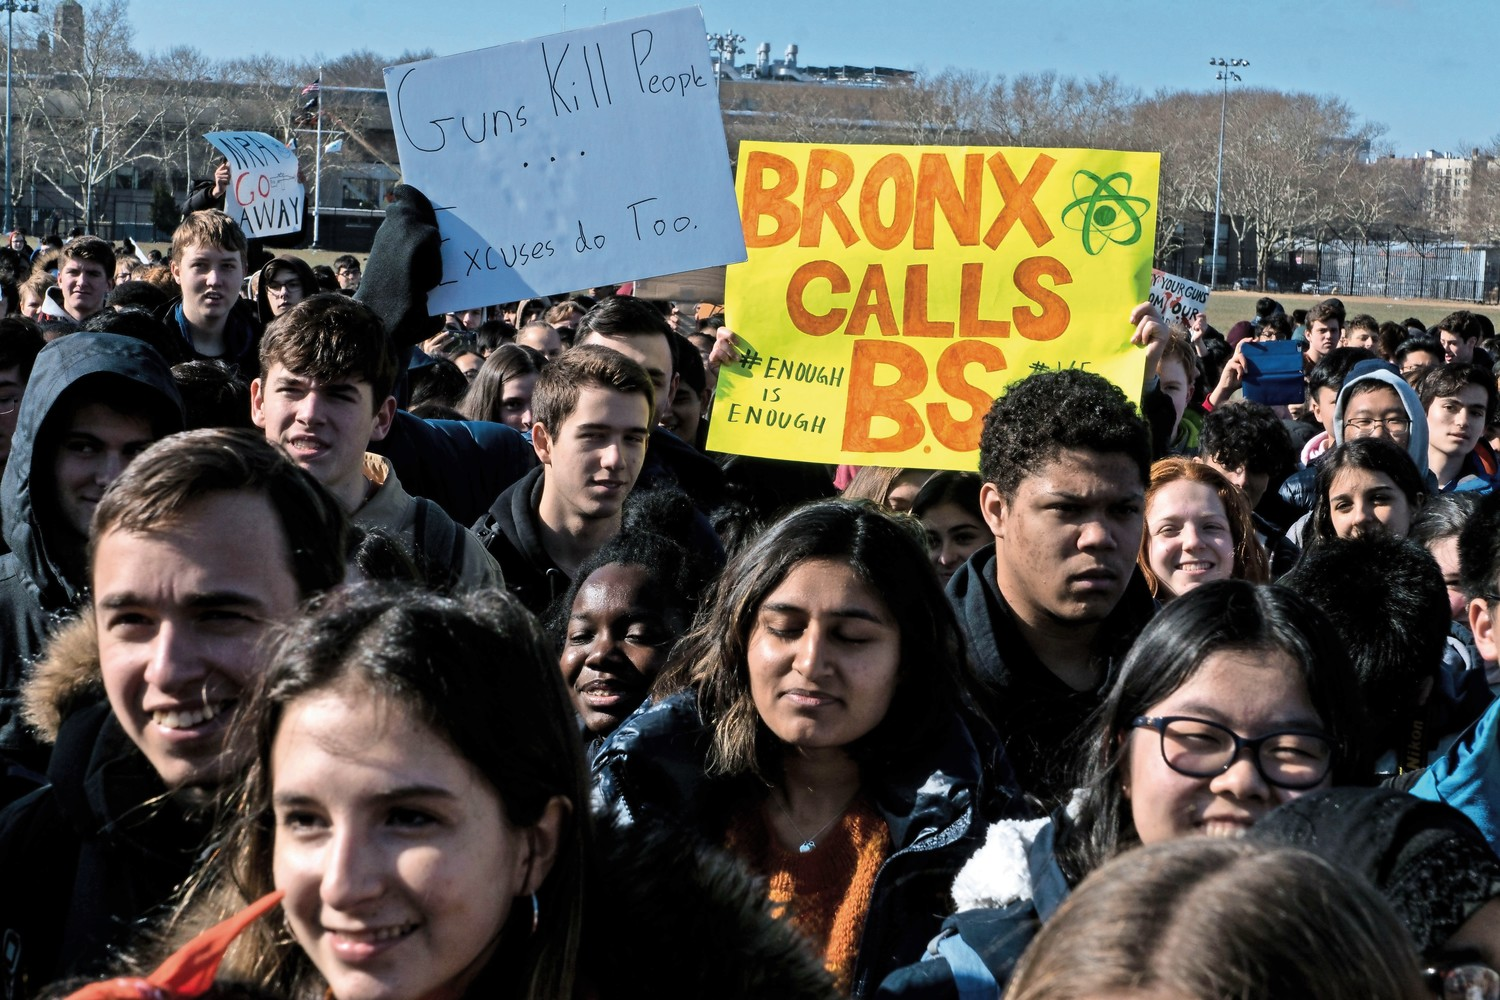 Students from Bronx Science and American Studies rally at Harris Field to protest gun violence following the mass shooting at Marjory Stoneman Douglas High School in February.